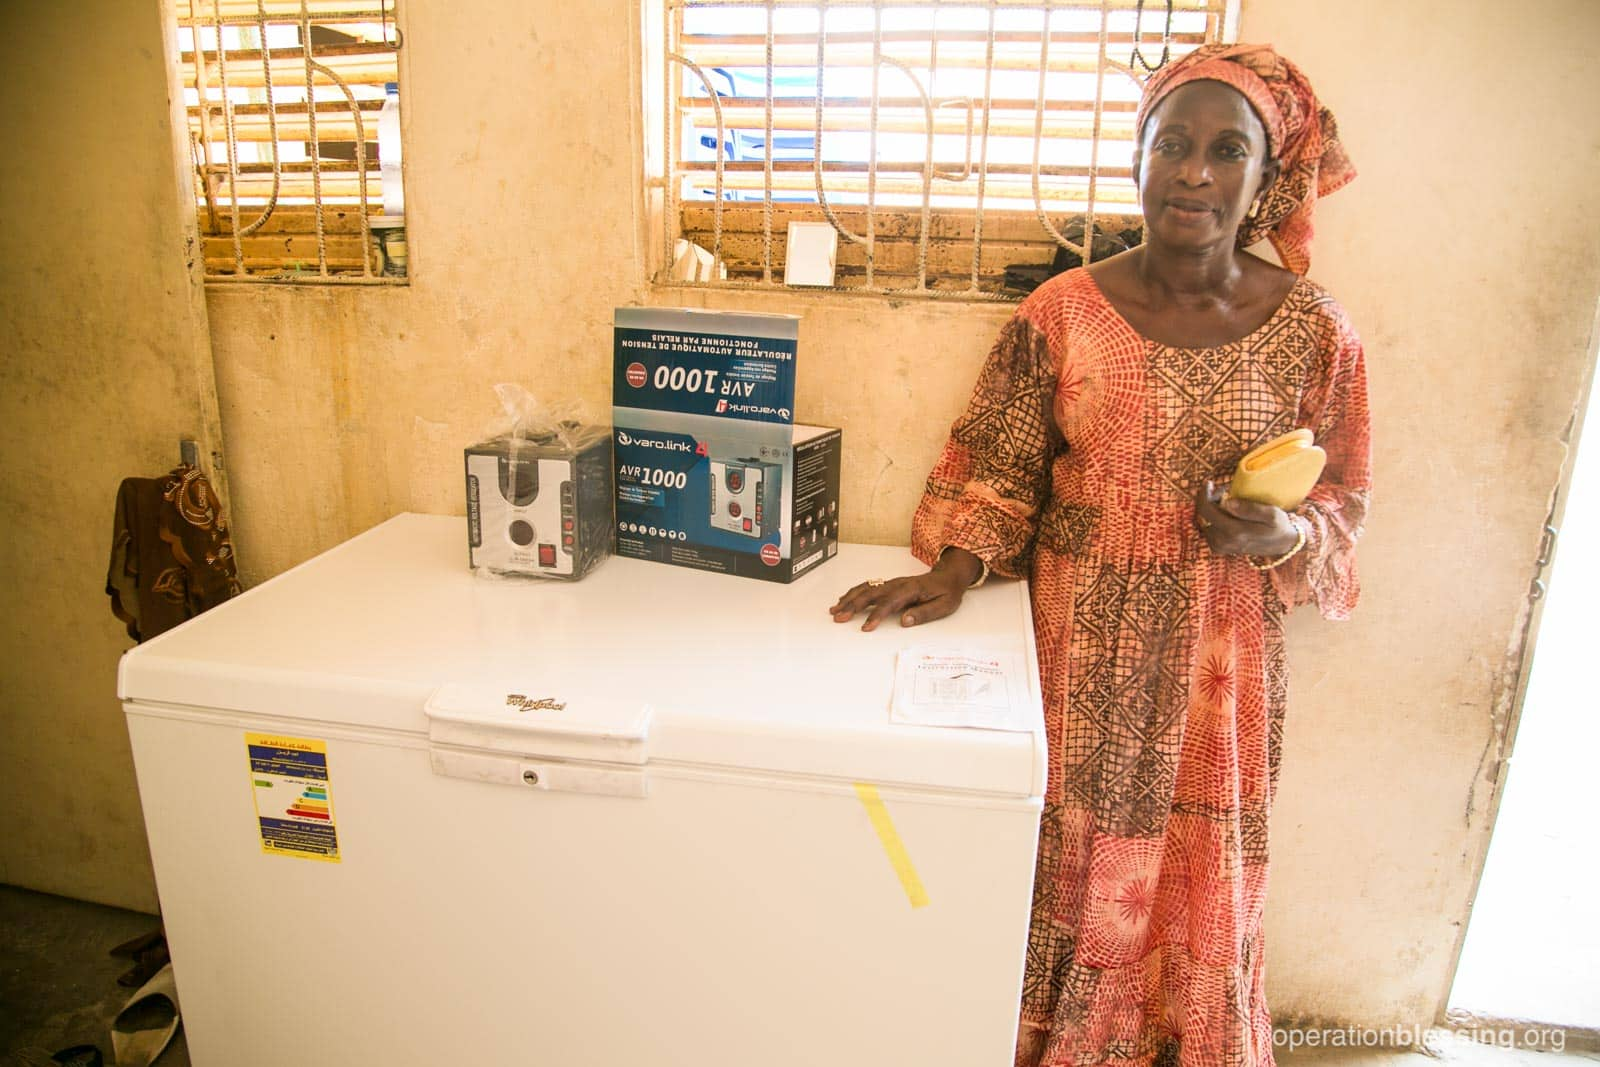 Seynabou stands beside her new refrigerator from Operation Blessing partners that will help her produce more ice cream.